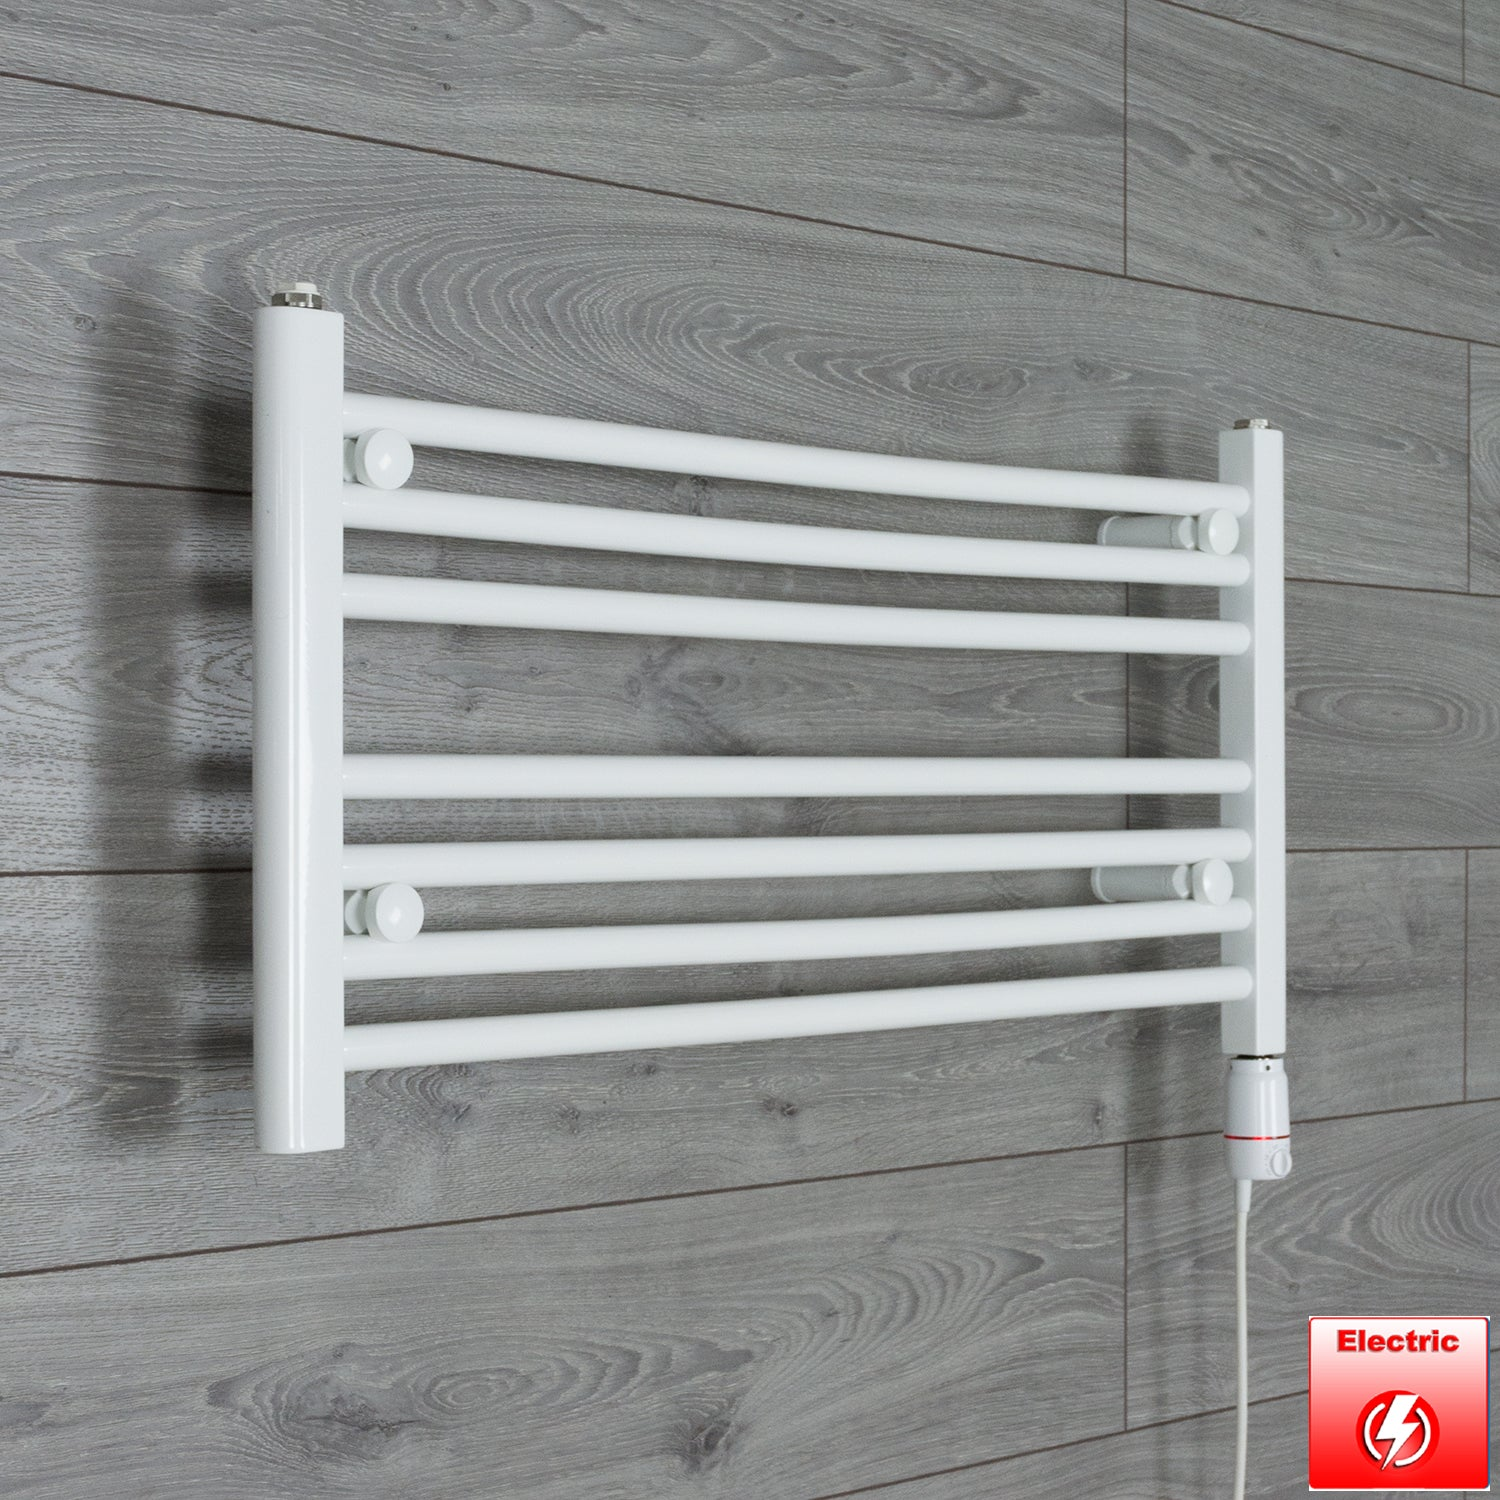 850mm Wide 400mm High Pre-Filled White Electric Towel Rail Radiator With Thermostatic GT Element